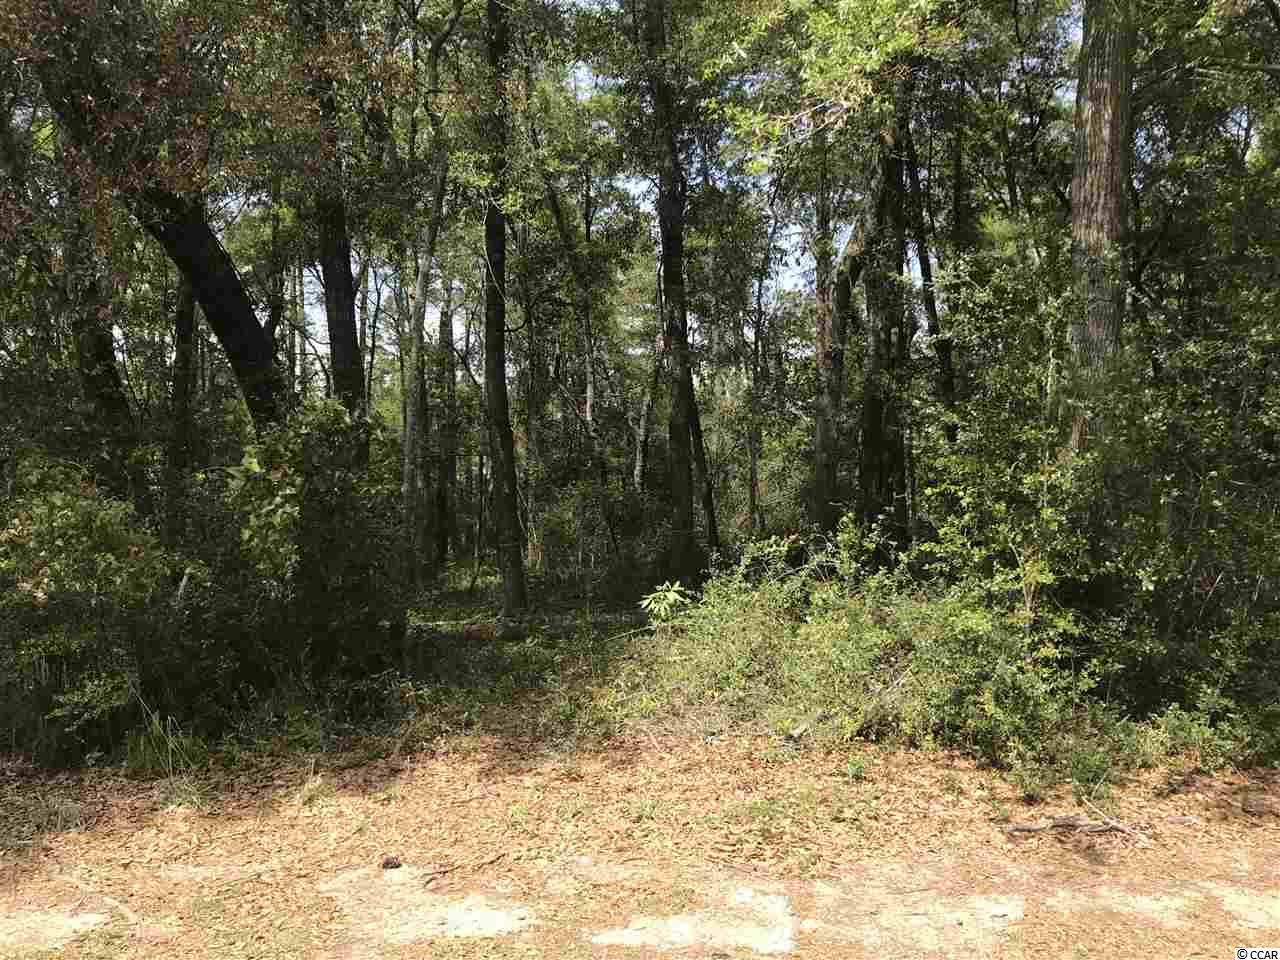 Build your DREAM HOME on this gorgeous lot at Preservation Point in The Reserve at Litchfield. This single-street neighborhood call PRESERVATION POINT provides a unique level of quiet and privacy completely surrounded by a natural wetland preserve. This lot is located in a gated community with tons of accessible amenities including a marina with  dry storage, a clubhouse and pool, Private Golf Club, and private beach. Don't miss out on this